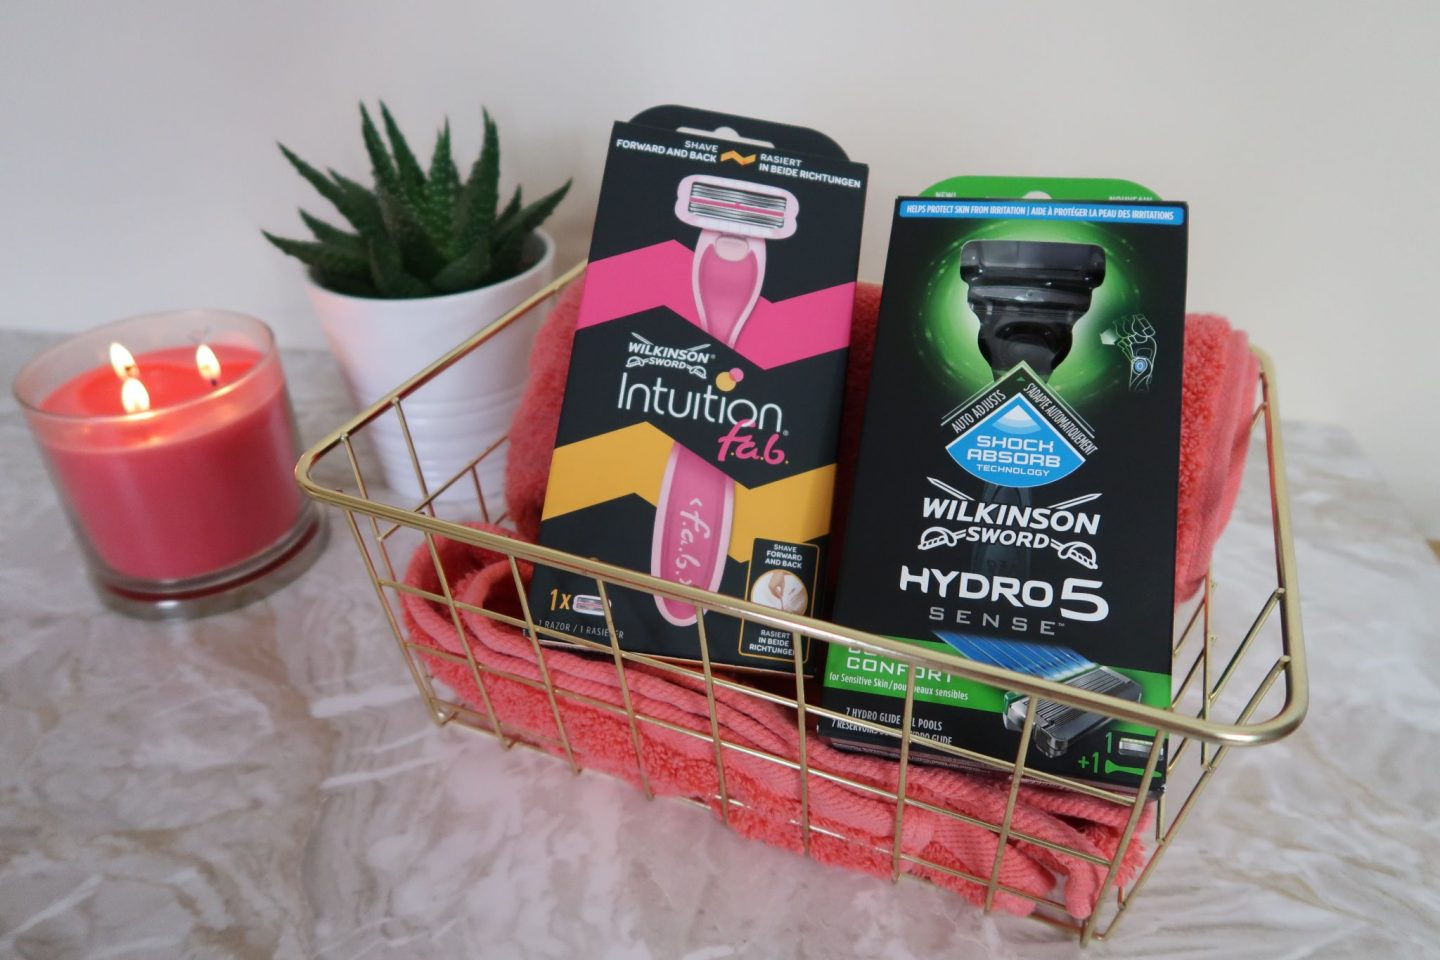 Hair Free with Wilkinson Sword & Femfresh - WhatLauraLoves